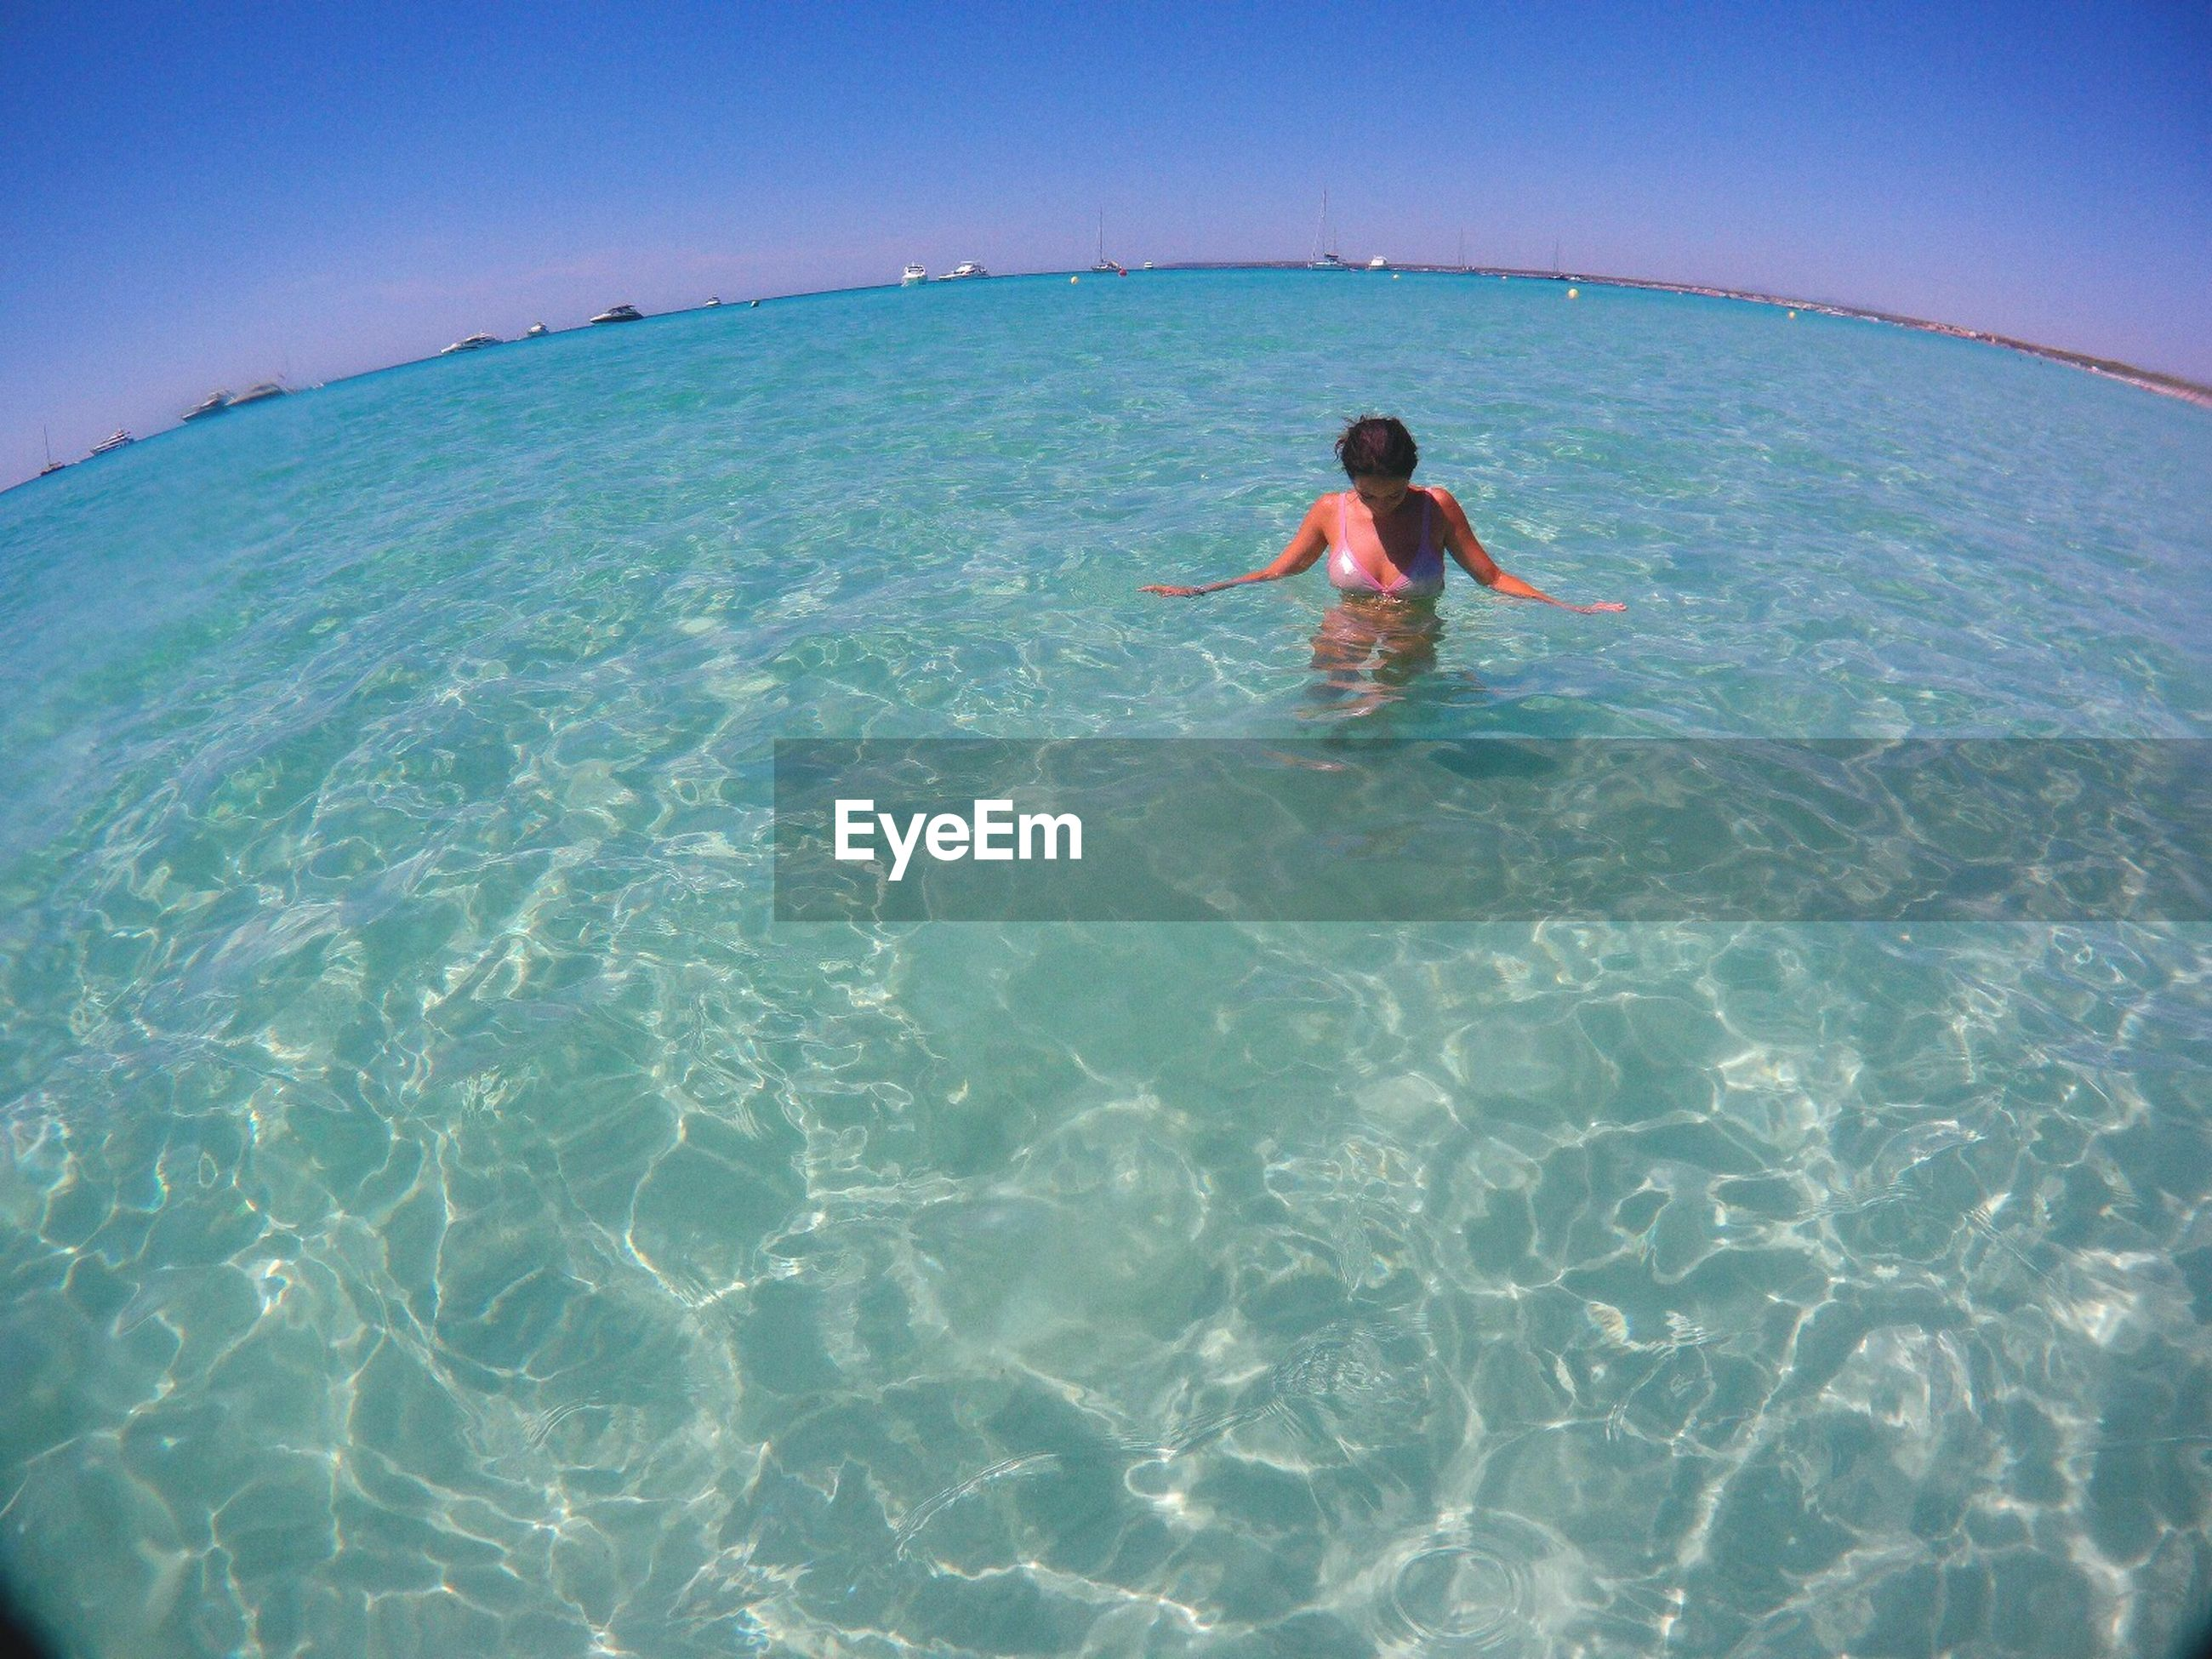 sea, real people, leisure activity, lifestyles, one person, vacations, water, waterfront, day, nature, outdoors, beauty in nature, clear sky, young adult, young women, swimming, ankle deep in water, sky, people